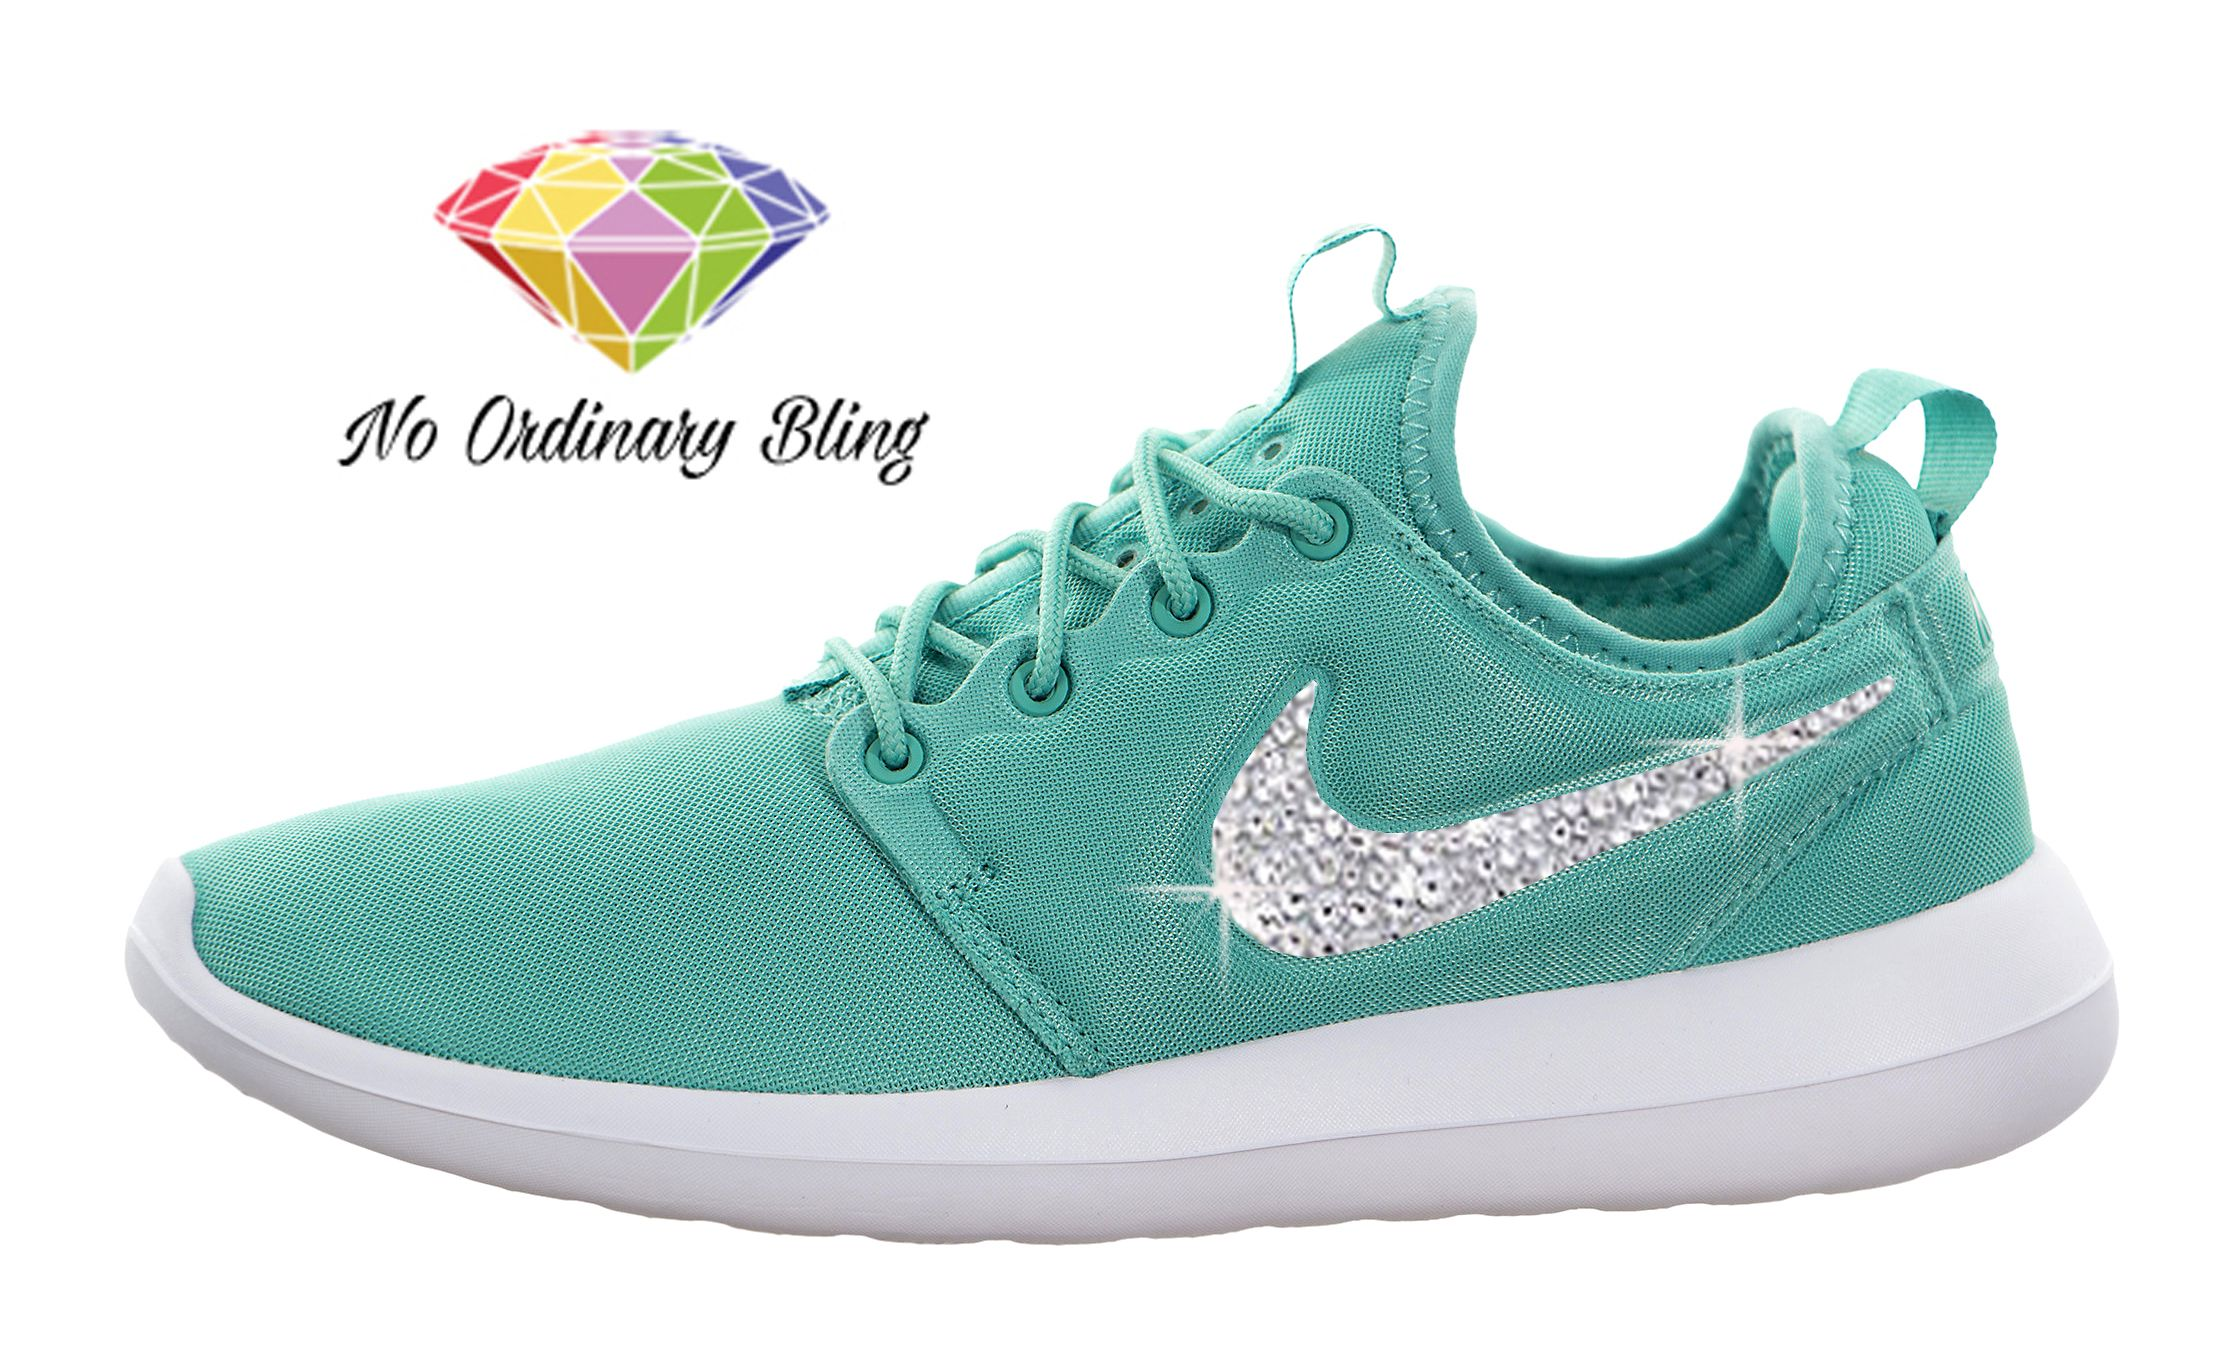 Nike Teal Bling Roshe Run Two Women's Washed